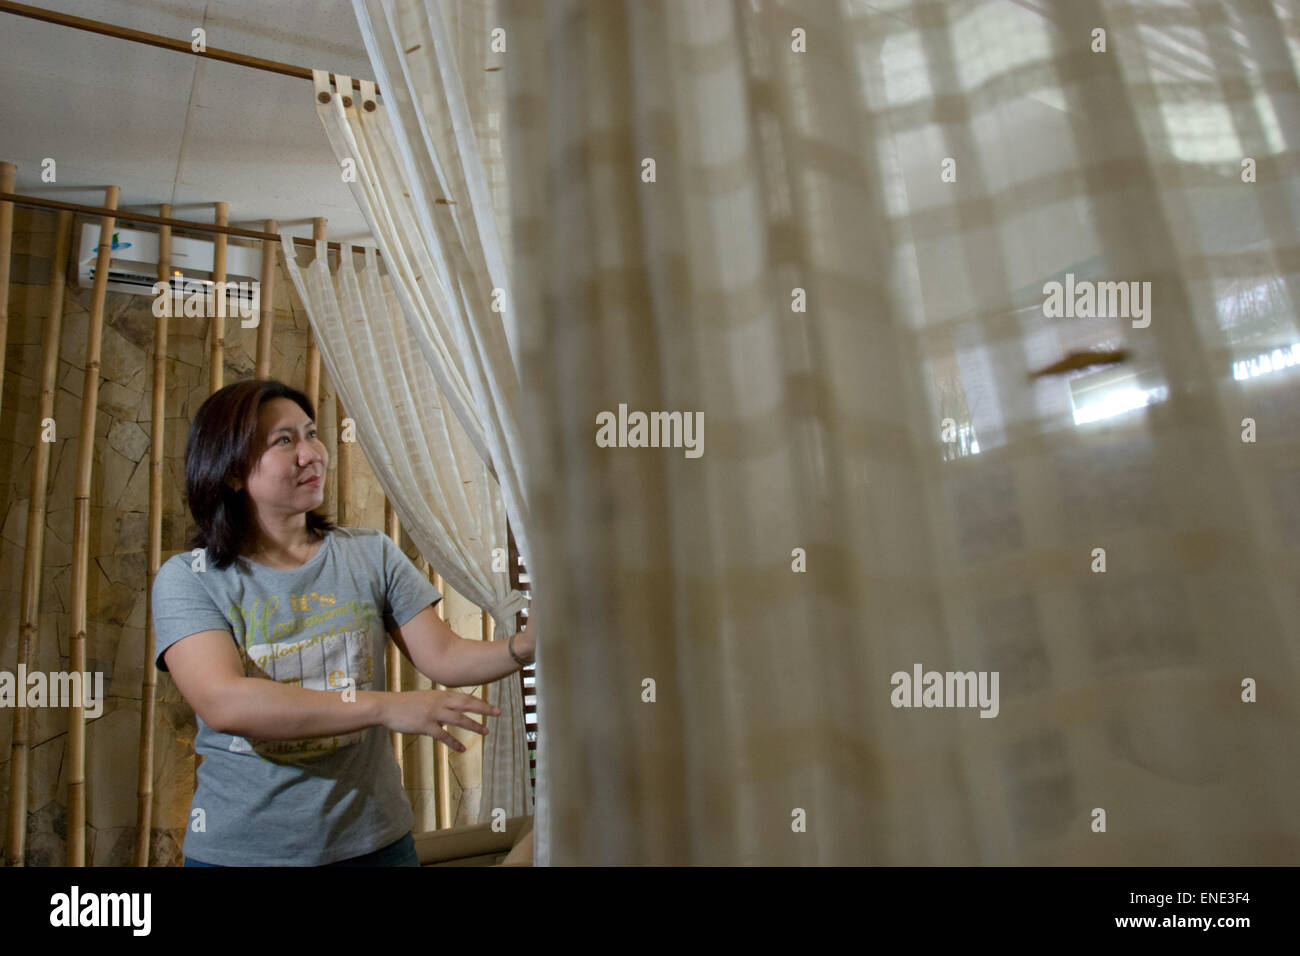 Susi Susanti, retired badminton player, opens her foot reflexology and sports physiotherapy center called Fontana - Stock Image